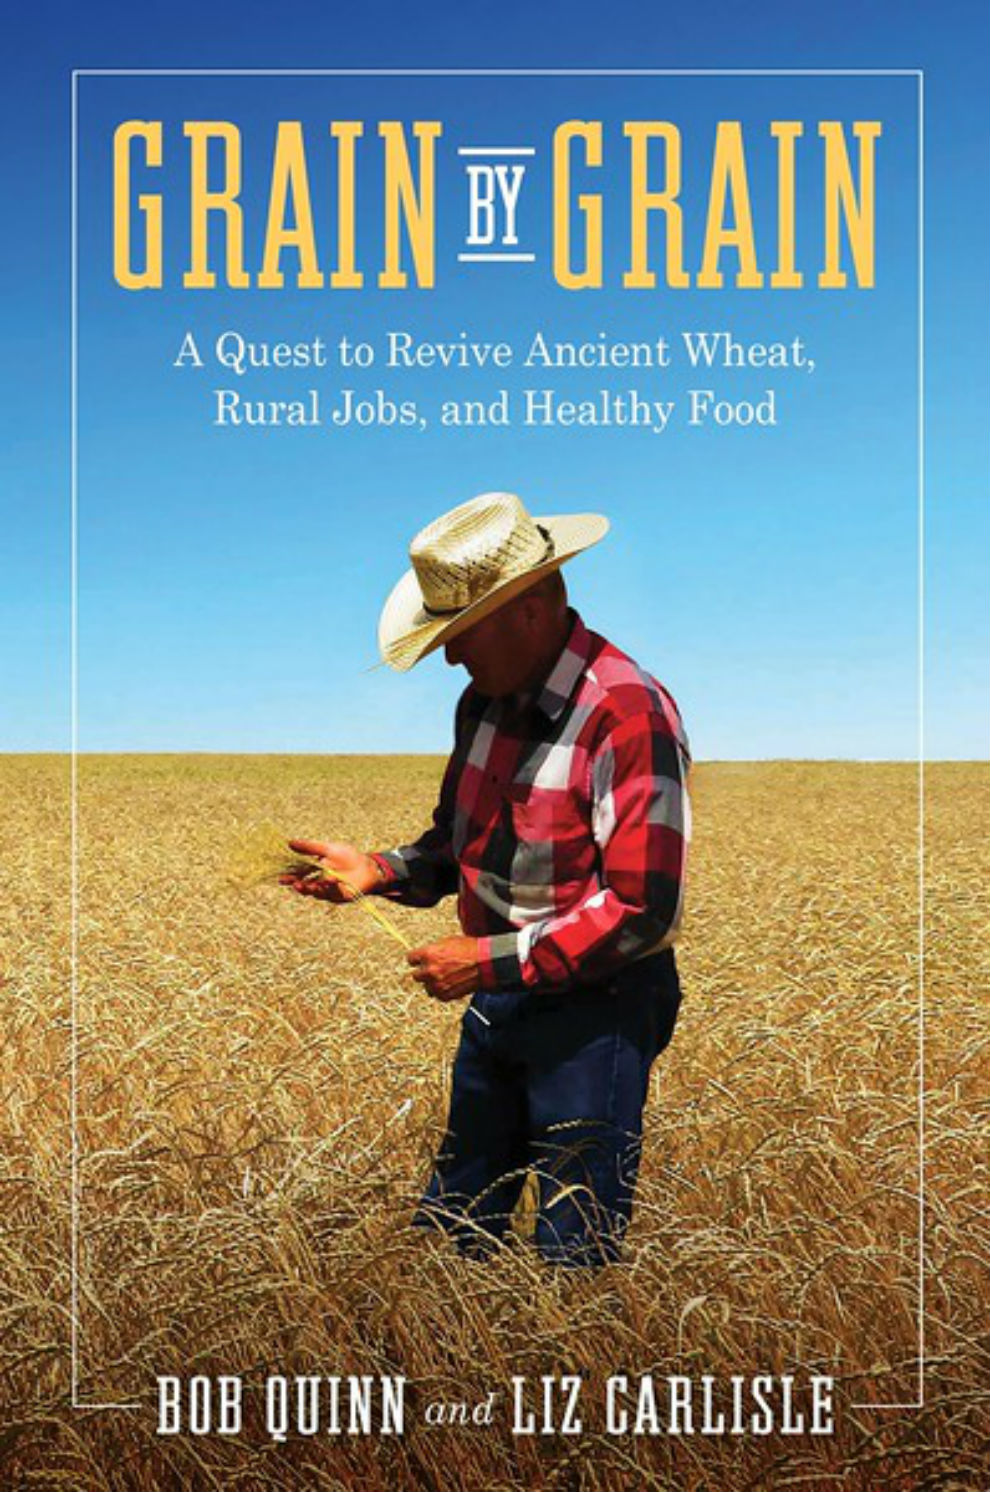 Grain-by-grain_book-cover_small